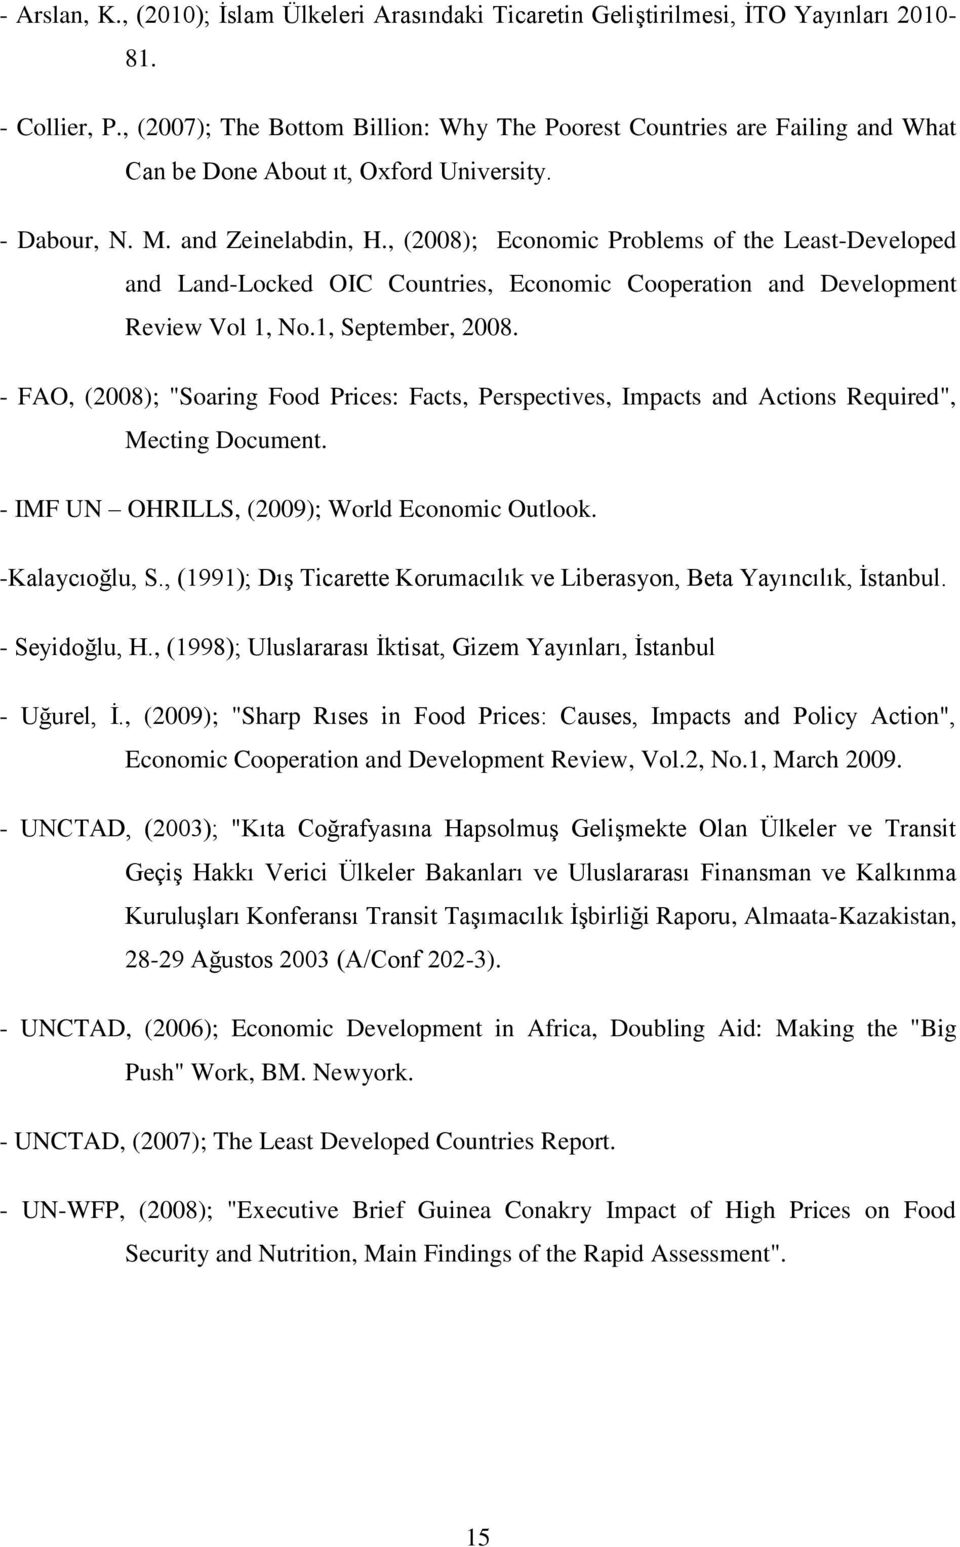 , (2008); Economic Problems of the Least-Developed and Land-Locked OIC Countries, Economic Cooperation and Development Review Vol 1, No.1, September, 2008.